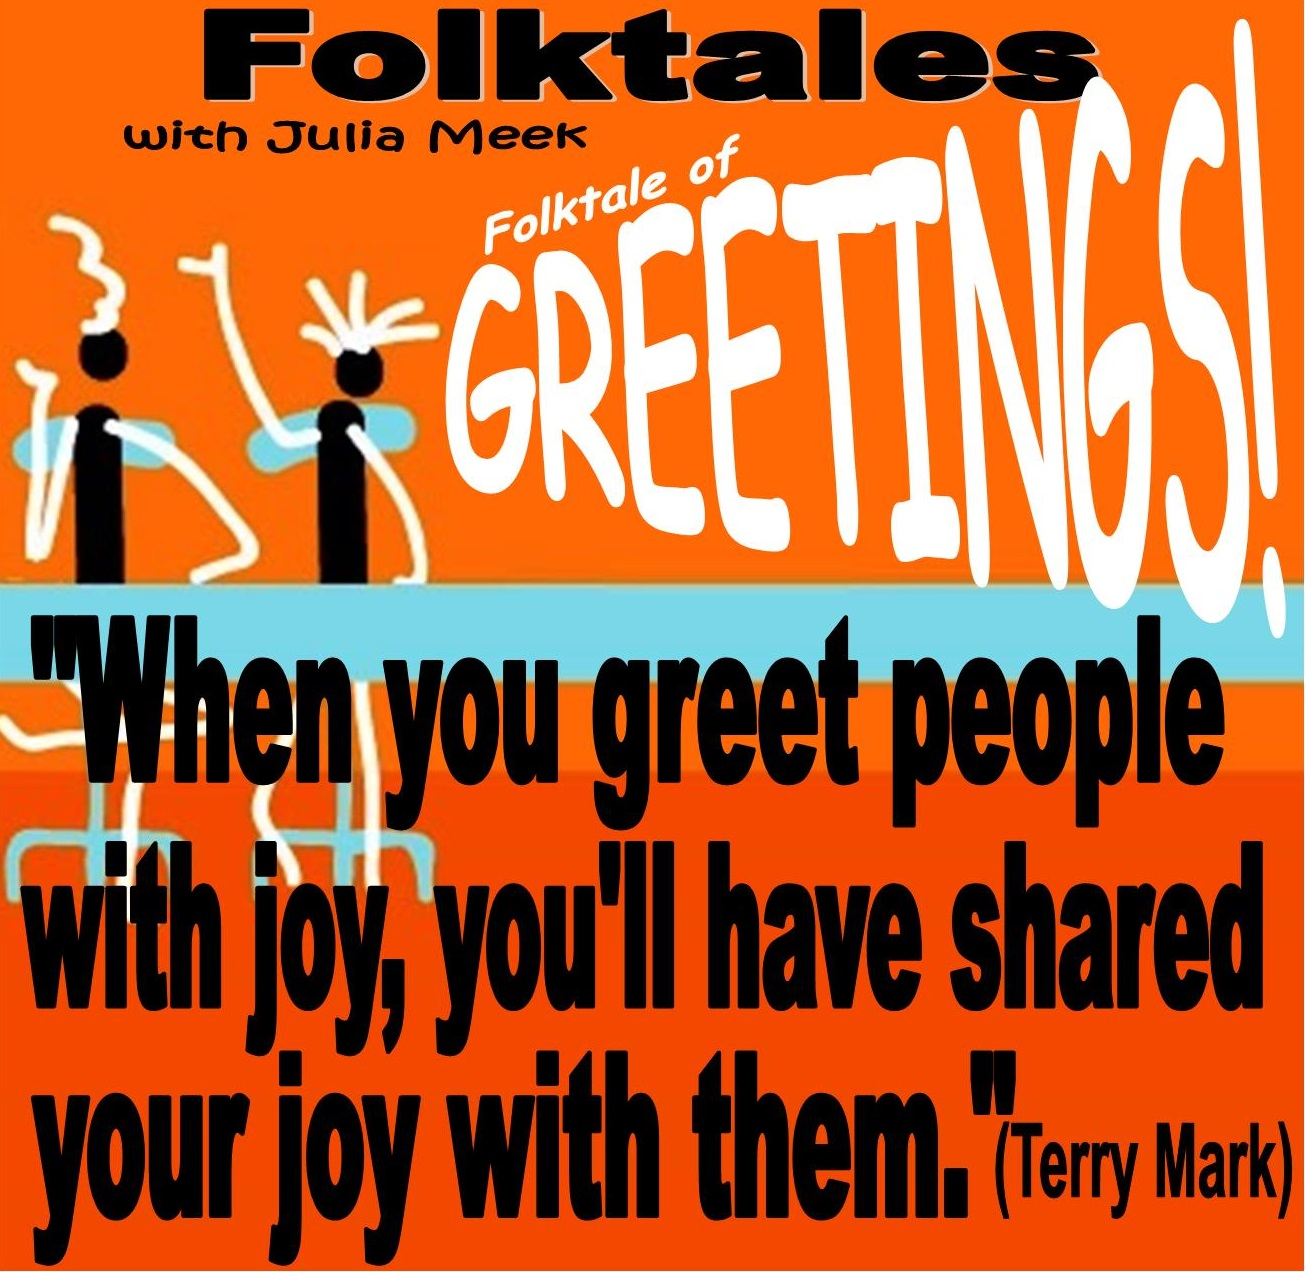 Caption: WBOI's Folktale of Greetings!, Credit: Julia Meek